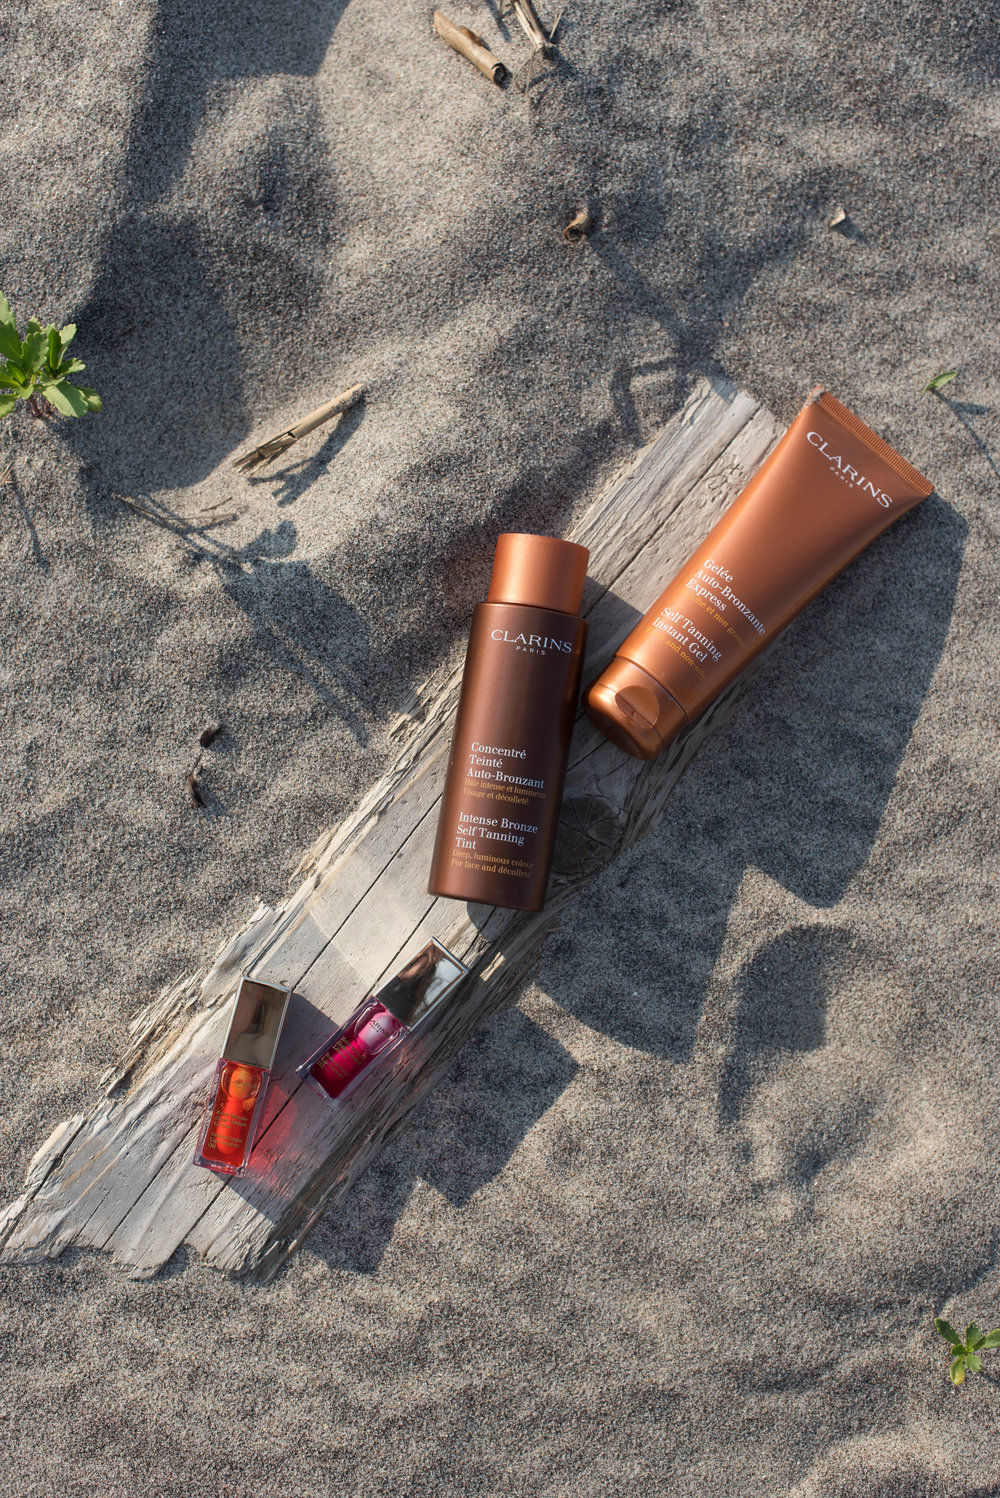 ROSE & IVY Journal Bronzed Beauty with Clarins